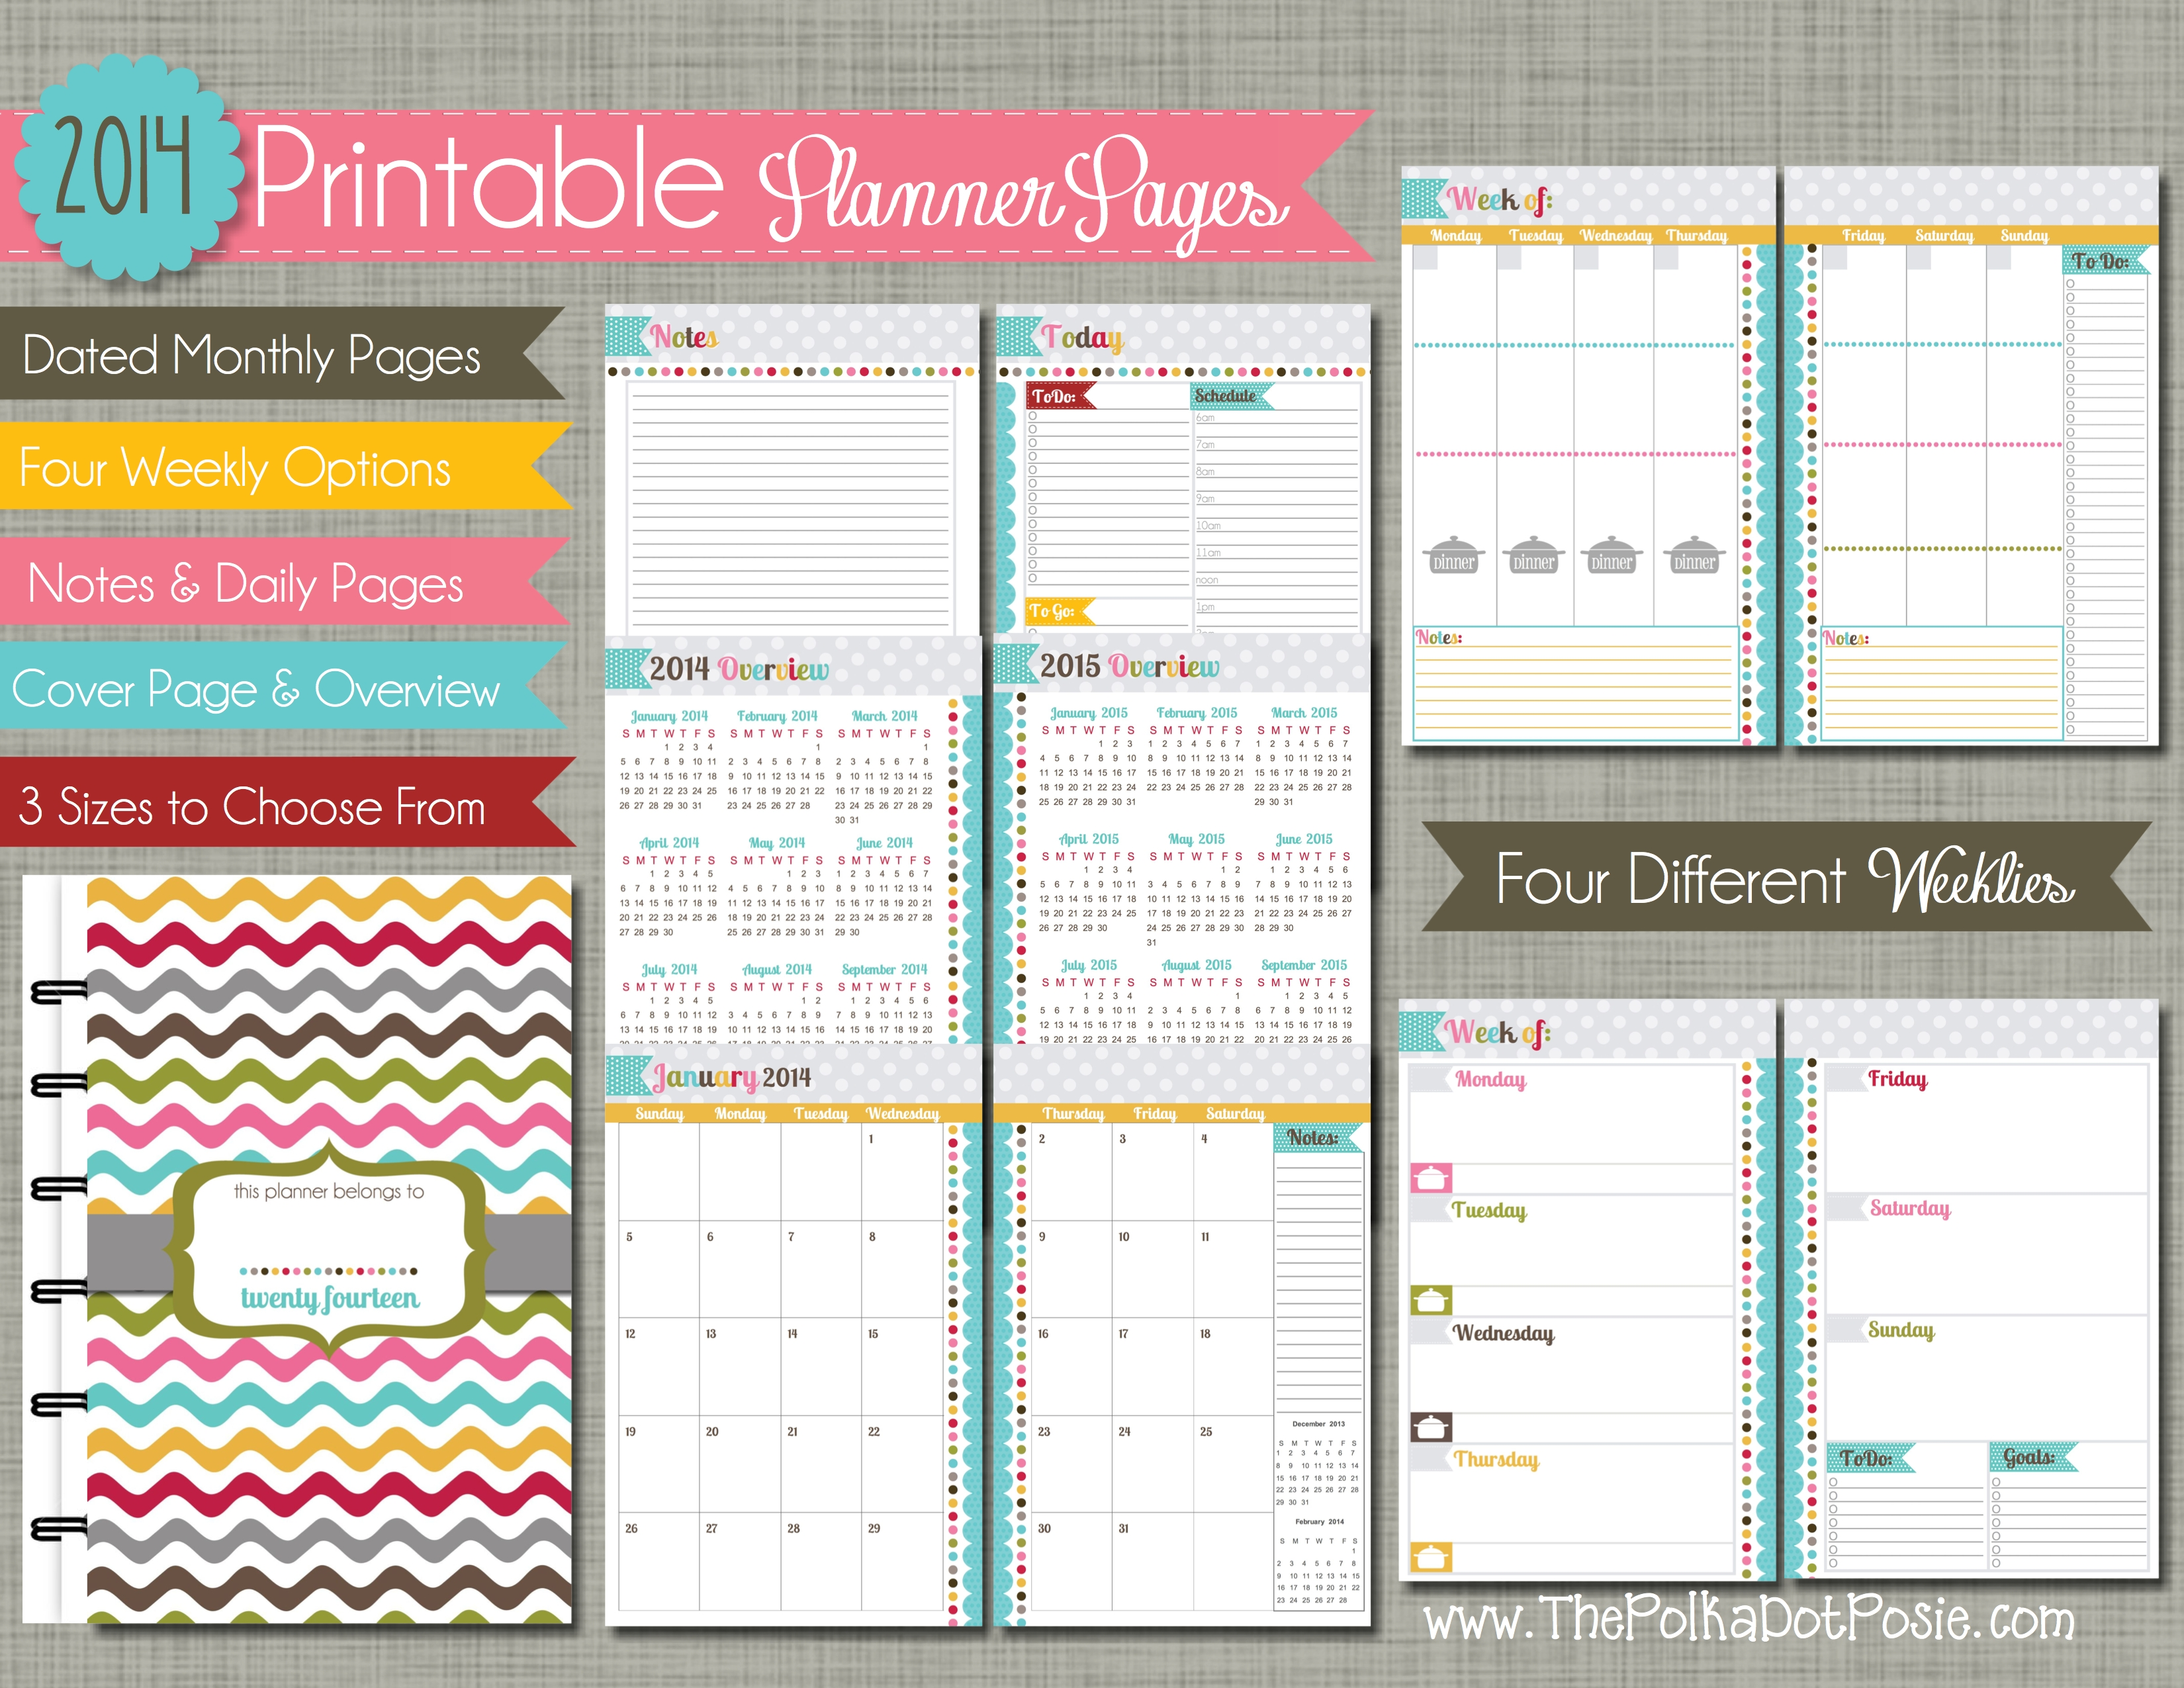 5 Images of Printable Planner Accessories